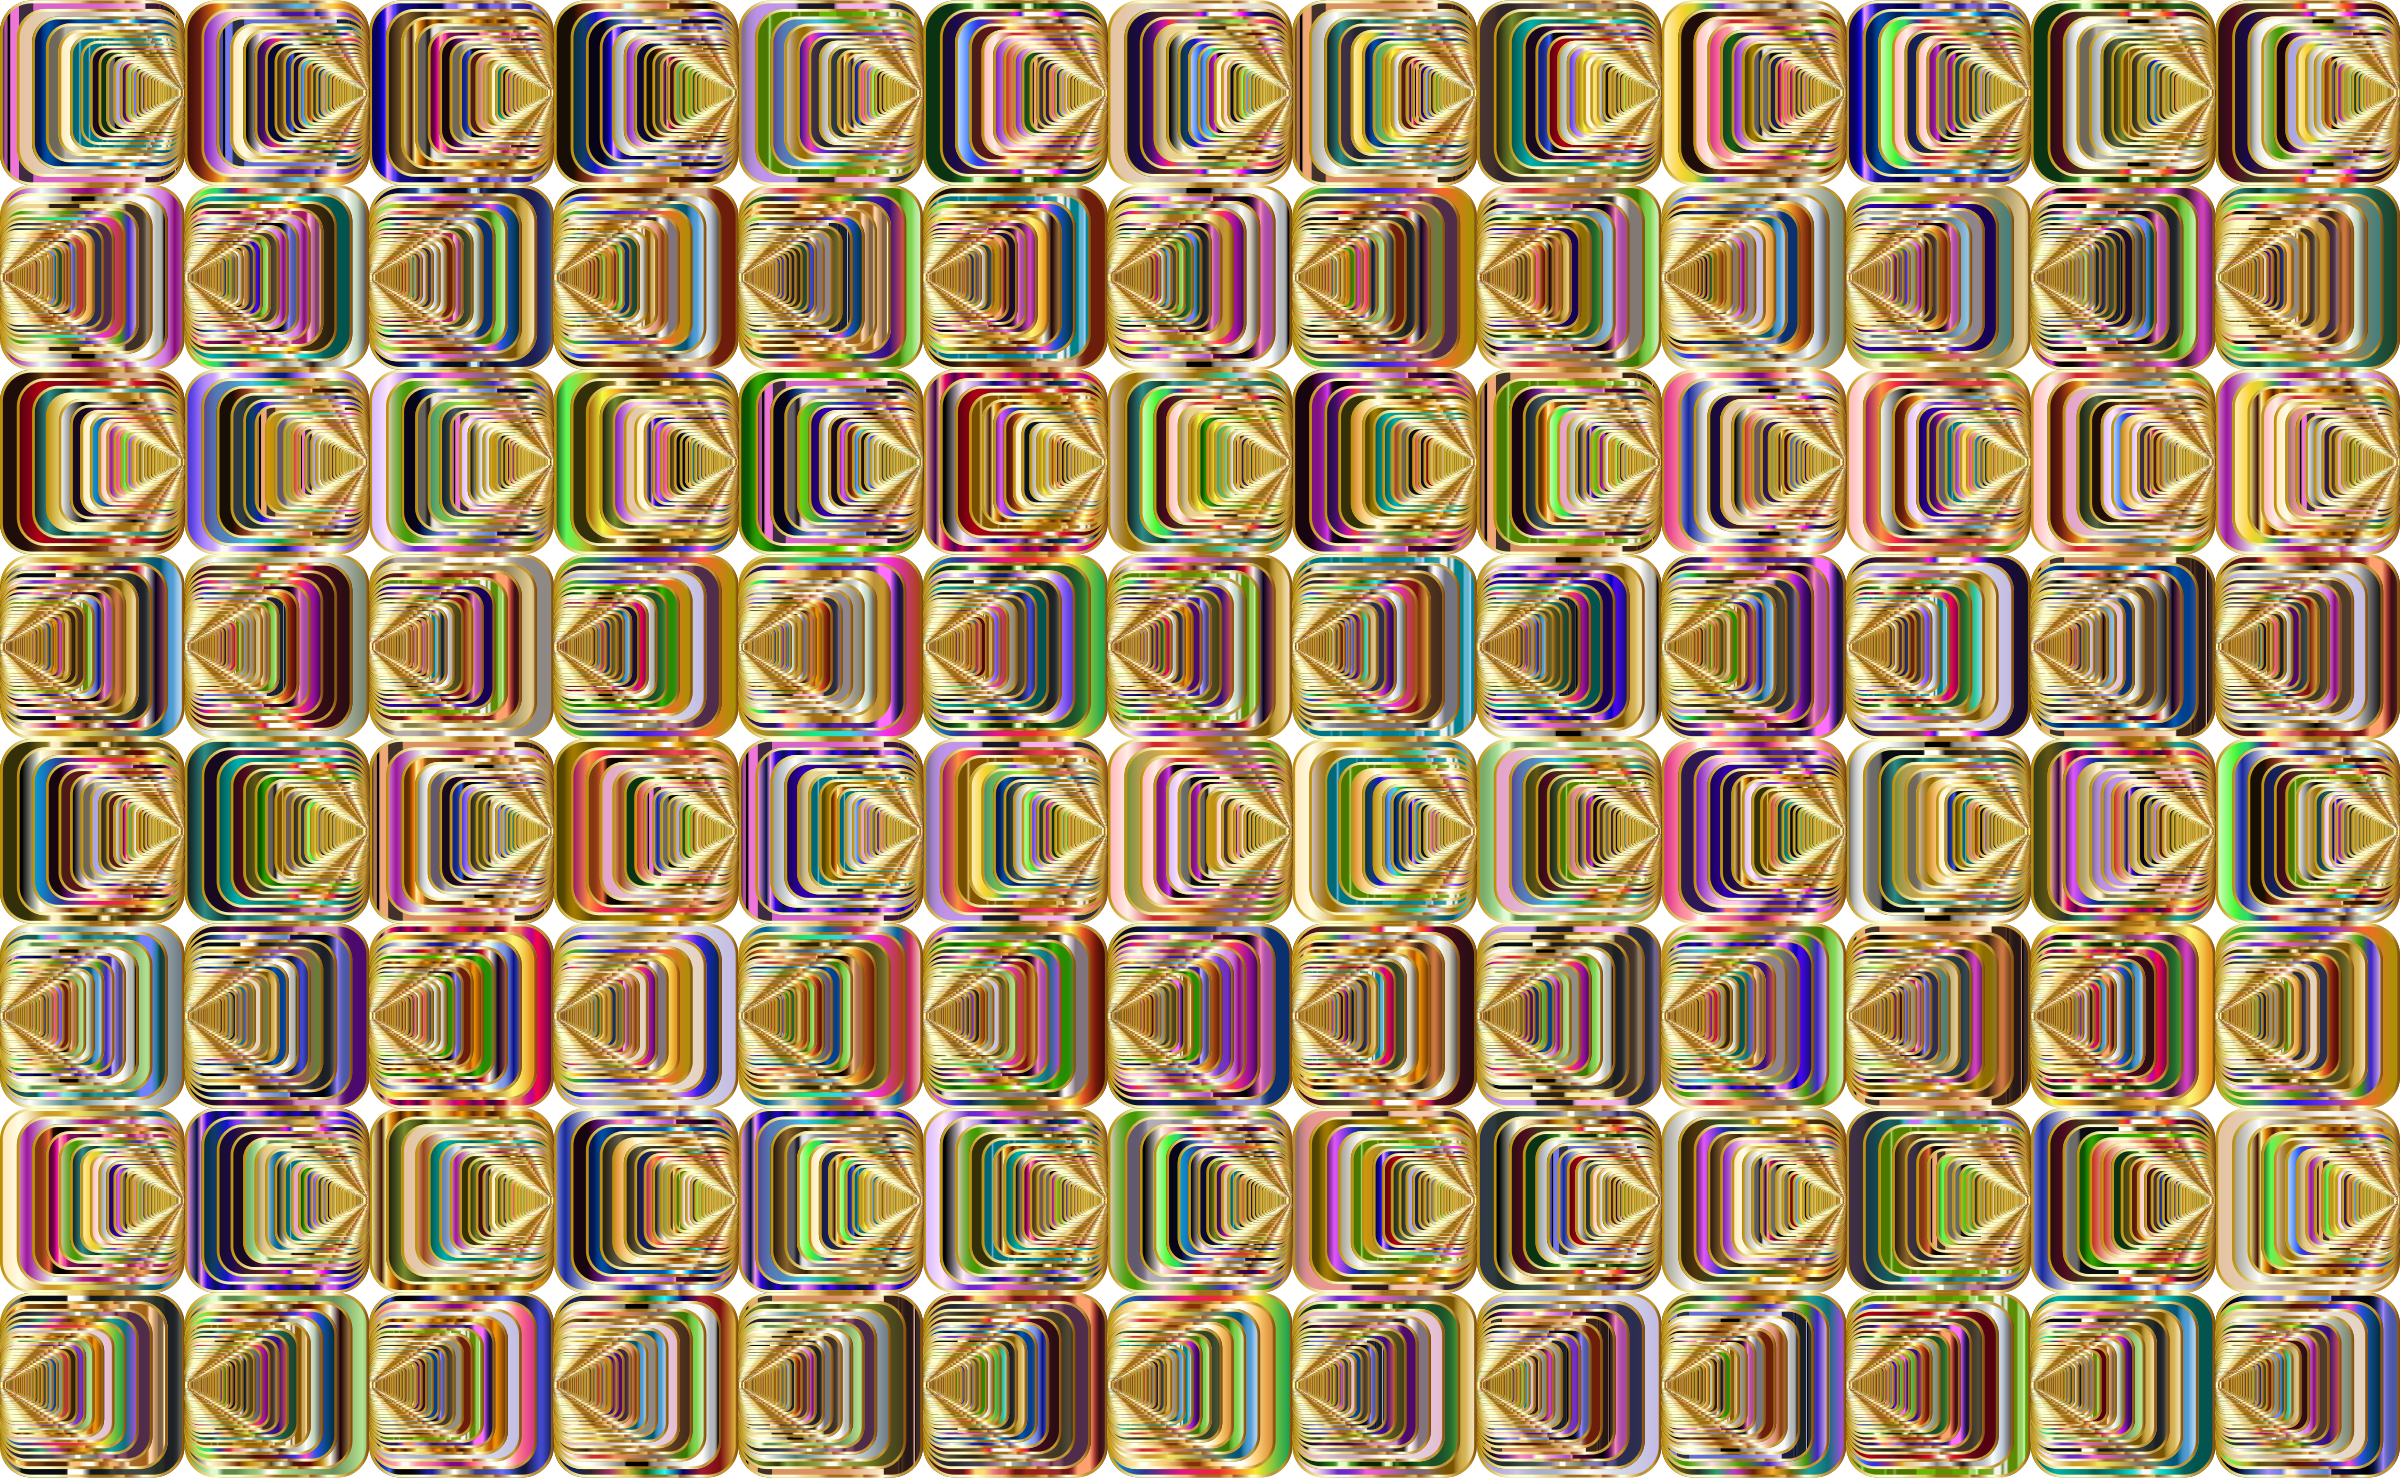 Prismatic Perspective Illusion 2 Pattern 4 Variation 4 by GDJ